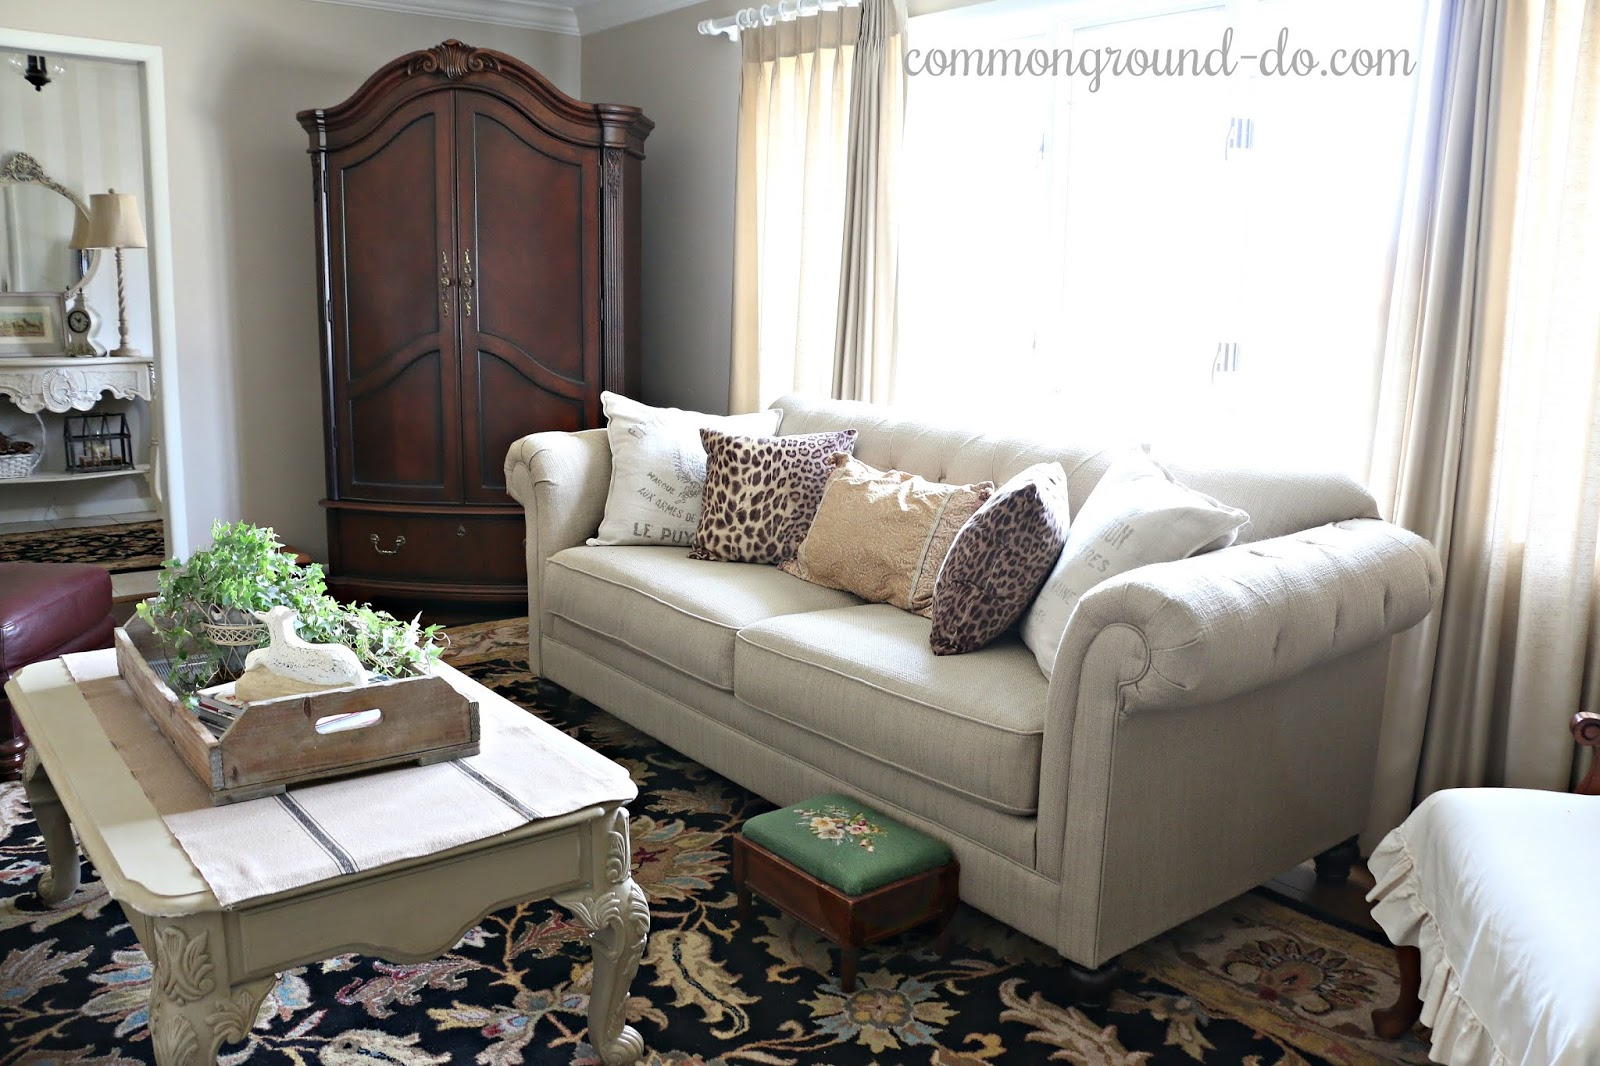 Common Ground Update On New House Living Room